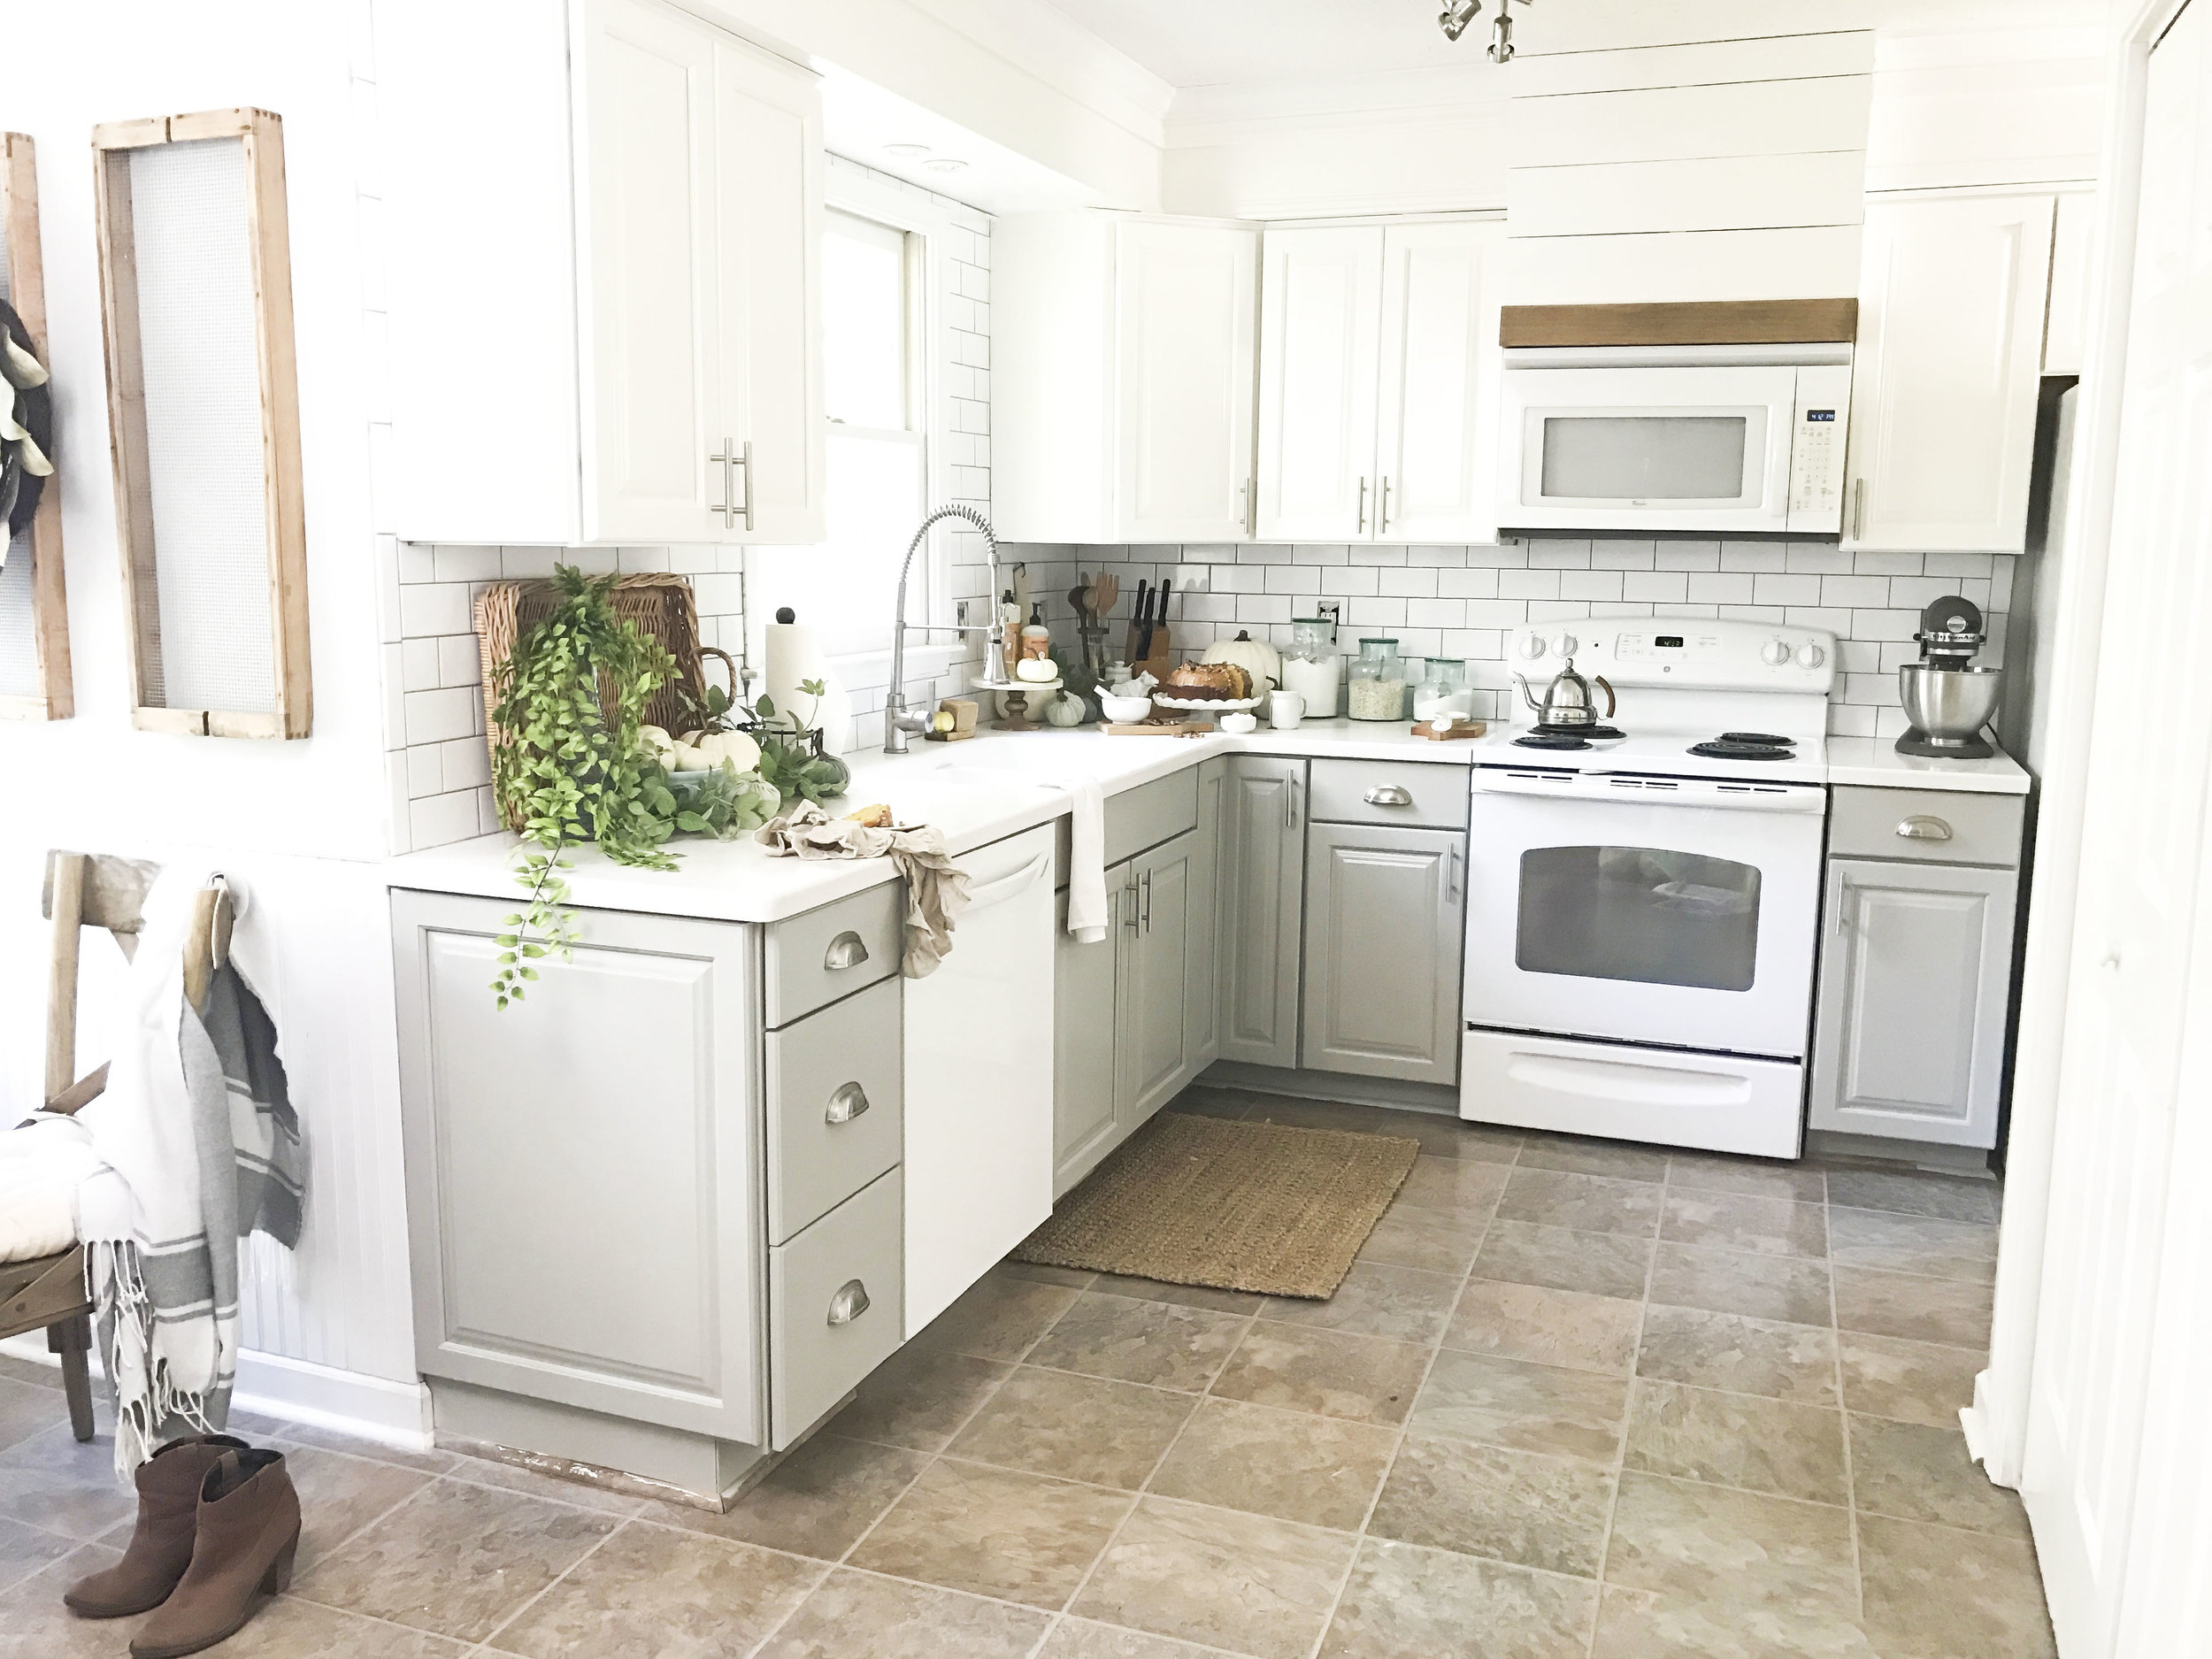 Fall+Home+Tour+inside+Plum+Pretty+Decor+and+Designs+Fall+Home-+First+look+inside+my+new+kitchen-+Fall+Kitchen+Decor.jpeg